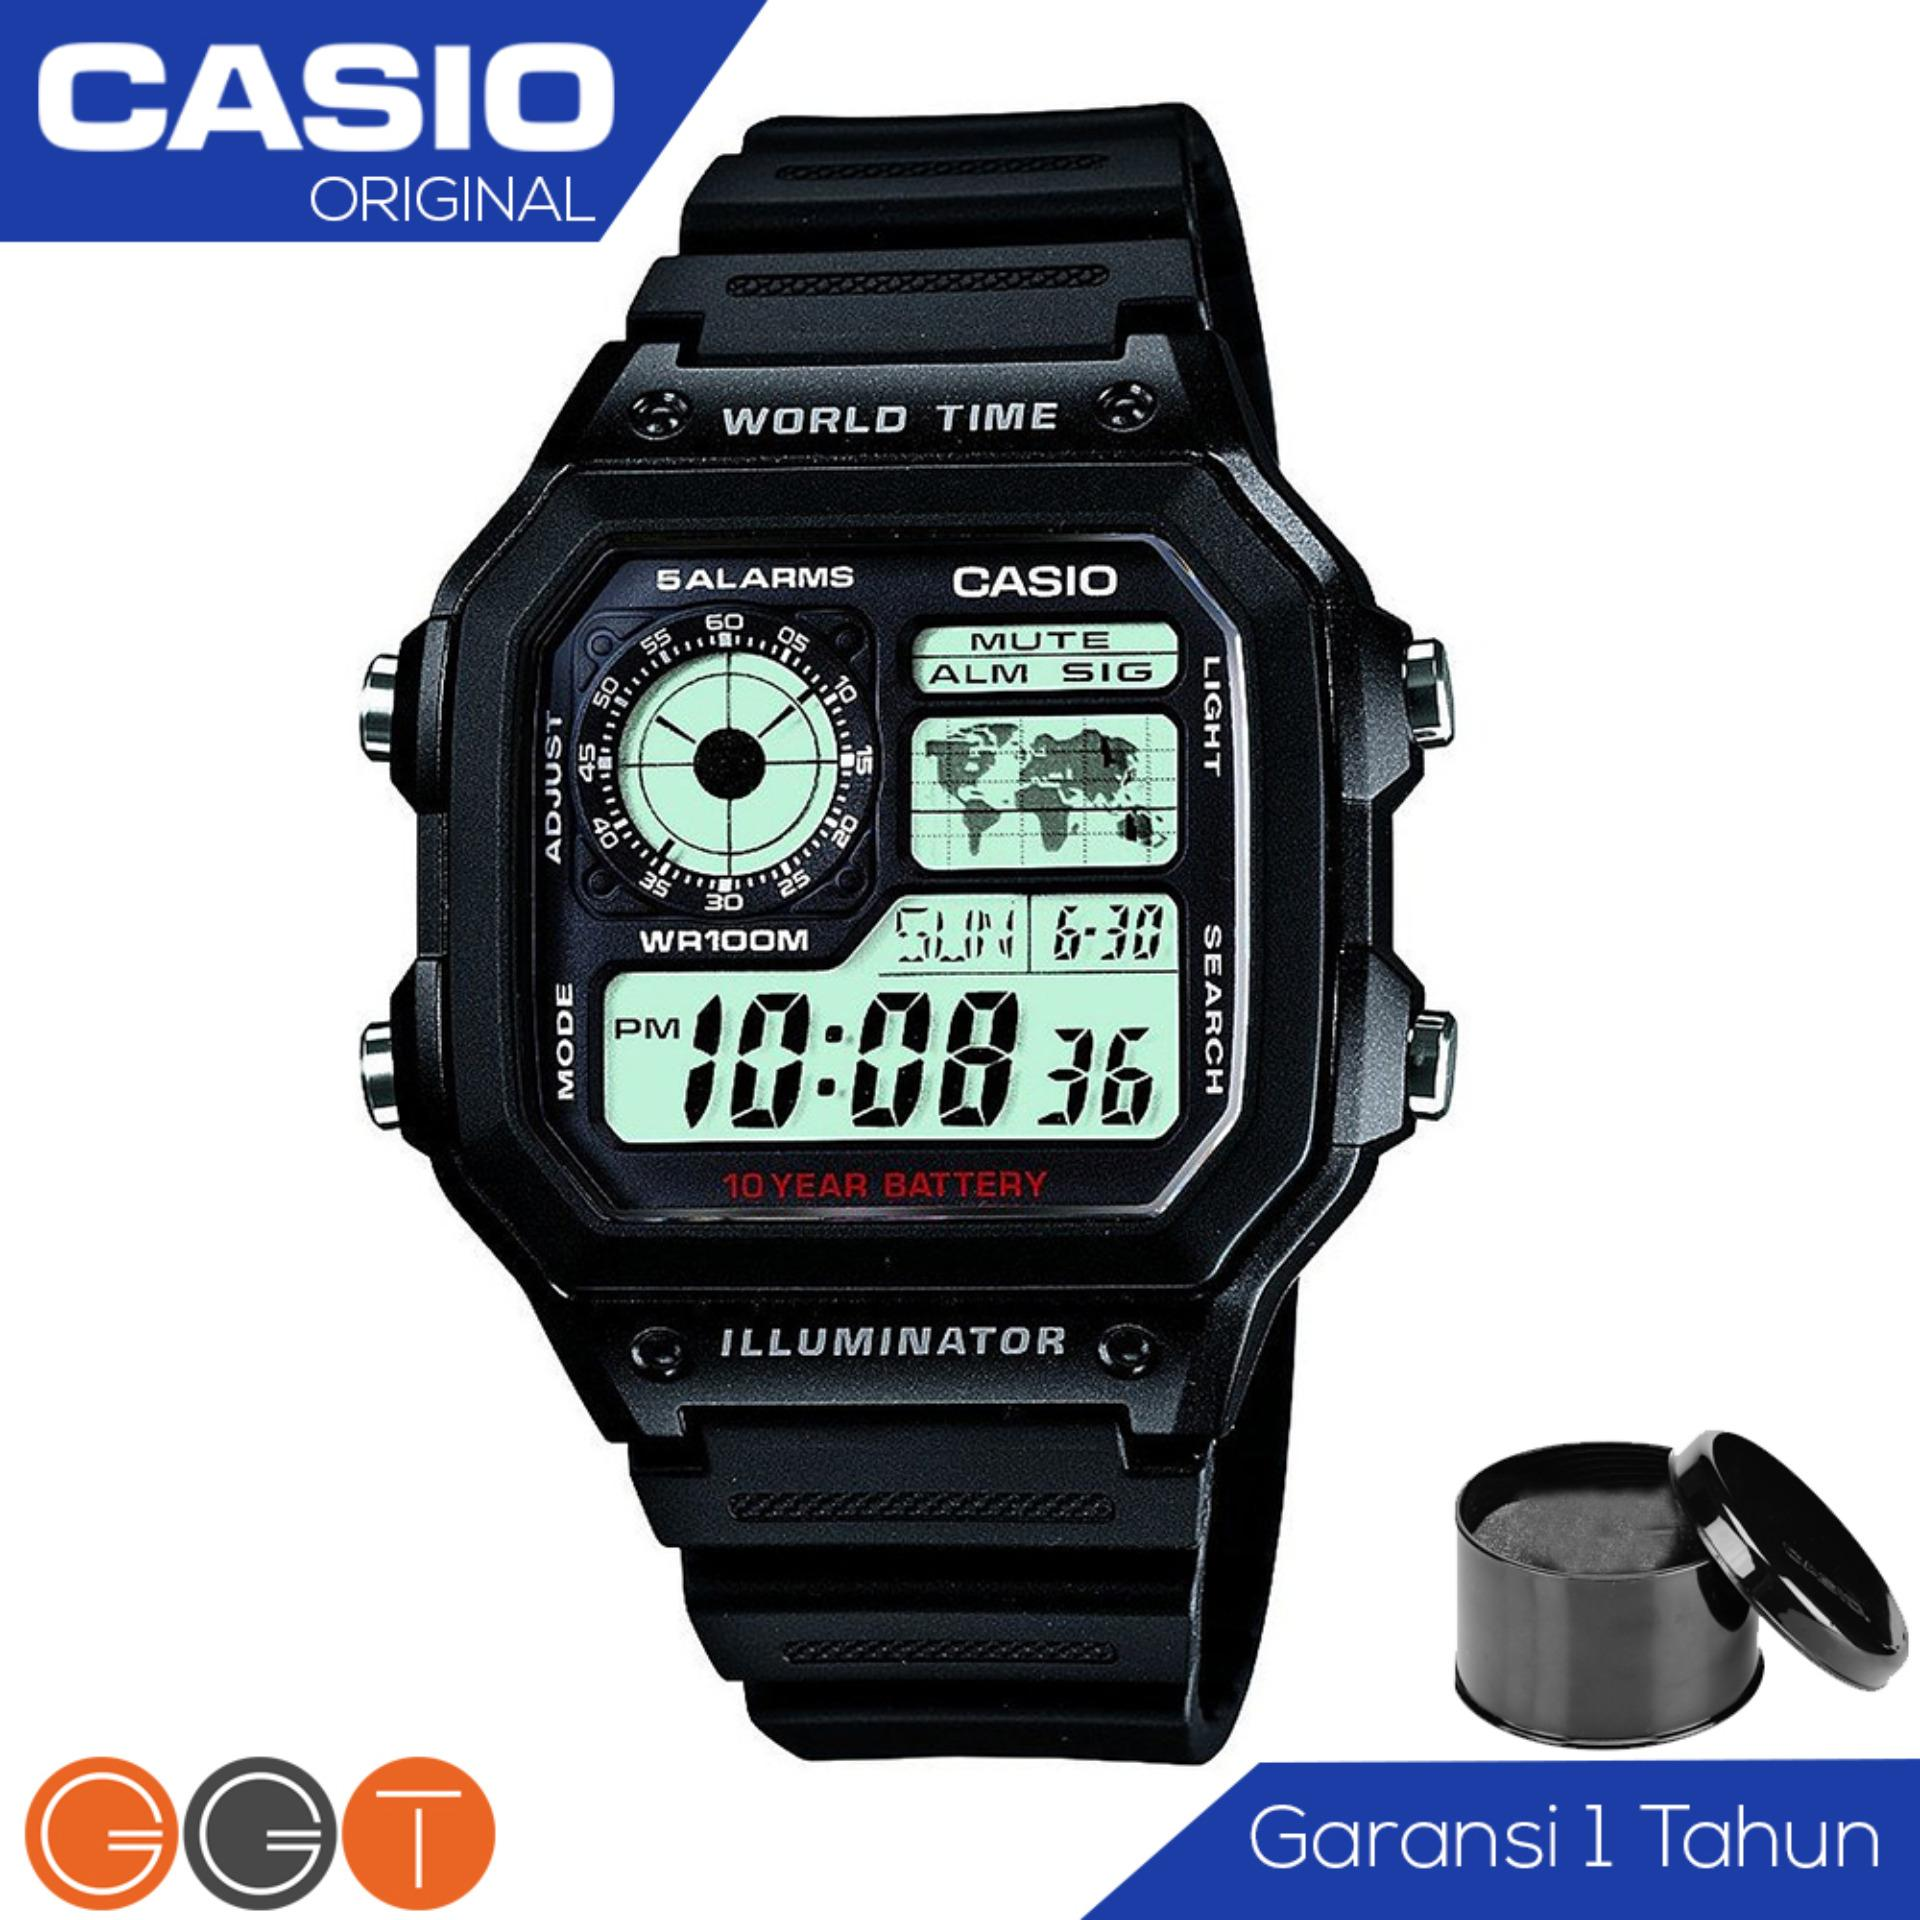 CASIO Illuminator Bond Style - Jam Tangan Pria - Tali Stainless (WHD) / Resin (WH)  - Digital Movement - Silver AE-1200